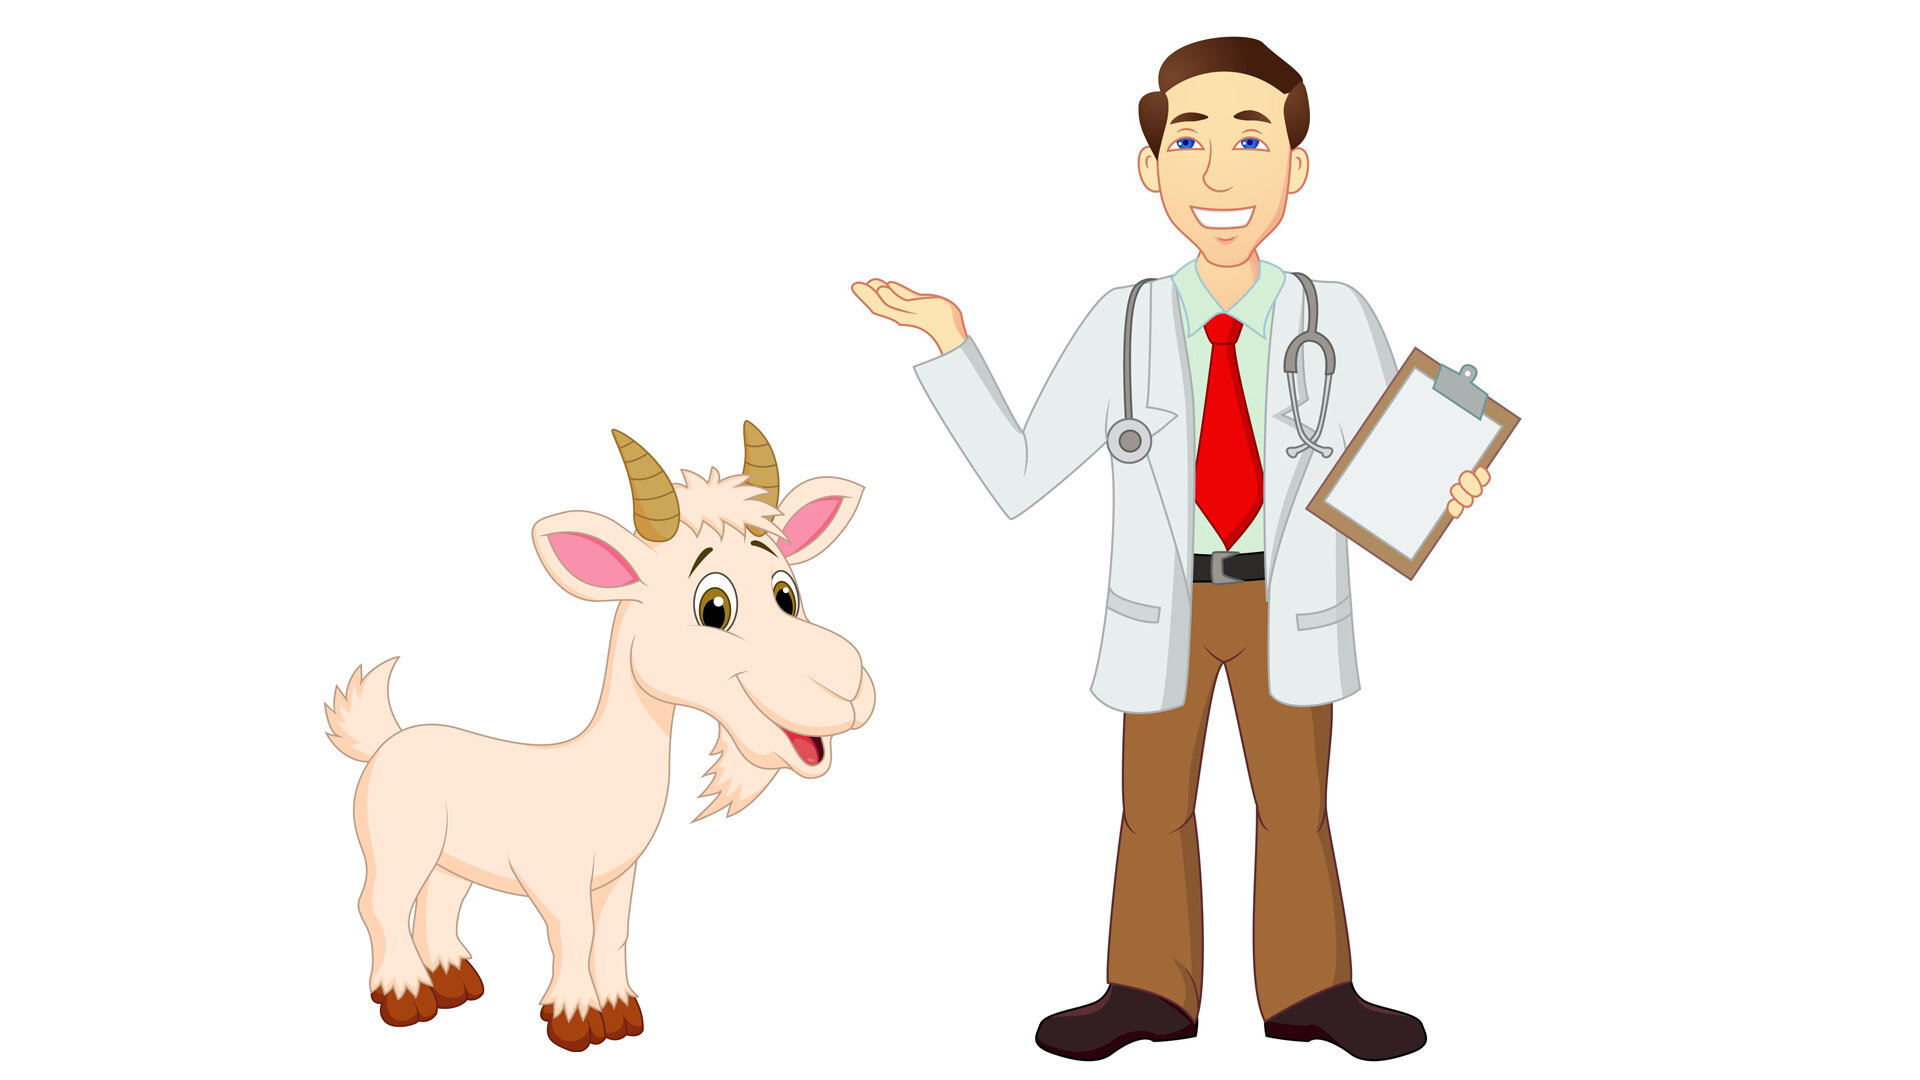 49: In the early 1900's, a doctor named John Brinkley offered a cure for impotence that involved implanting goat testicles in his patients.  https://www.youtube.com/watch?v=08HgcD5vIjI&t=131s